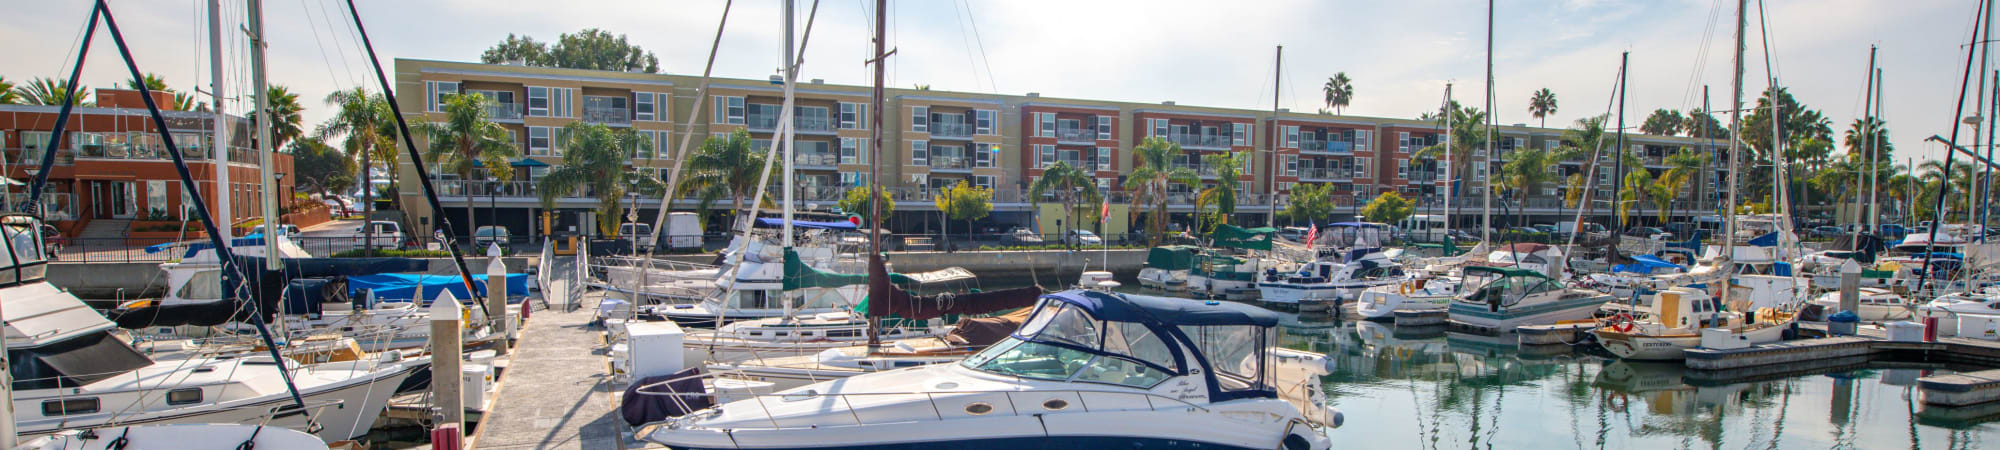 Pet friendly Harborside Marina Bay Apartments with ample space for your pets, in Marina del Rey, California